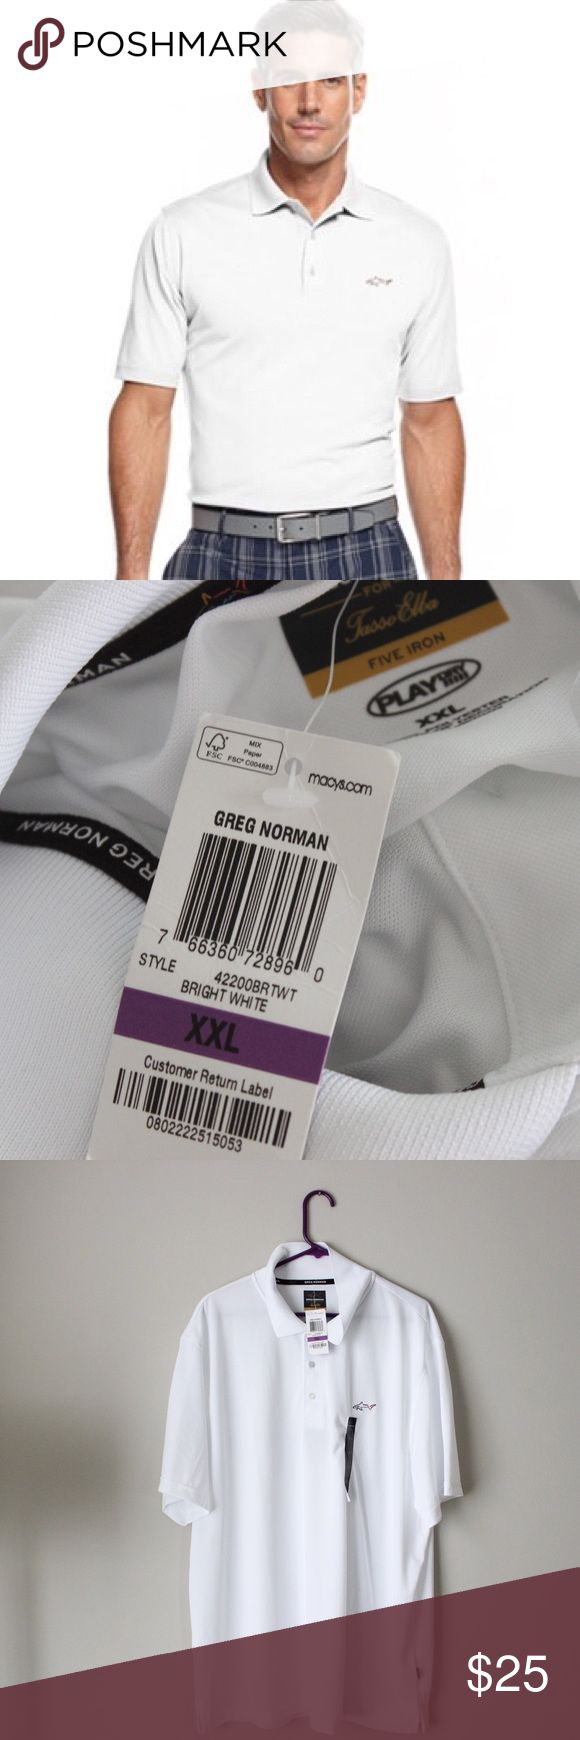 Greg Norman White Golf Polo Shirt Greg Norman golf polo, new with tags.  Fits true to size. Shown on a size 4/6 mannequin.. Measurements available upon request. All orders ship same or next business day! Greg Norman Shirts Polos